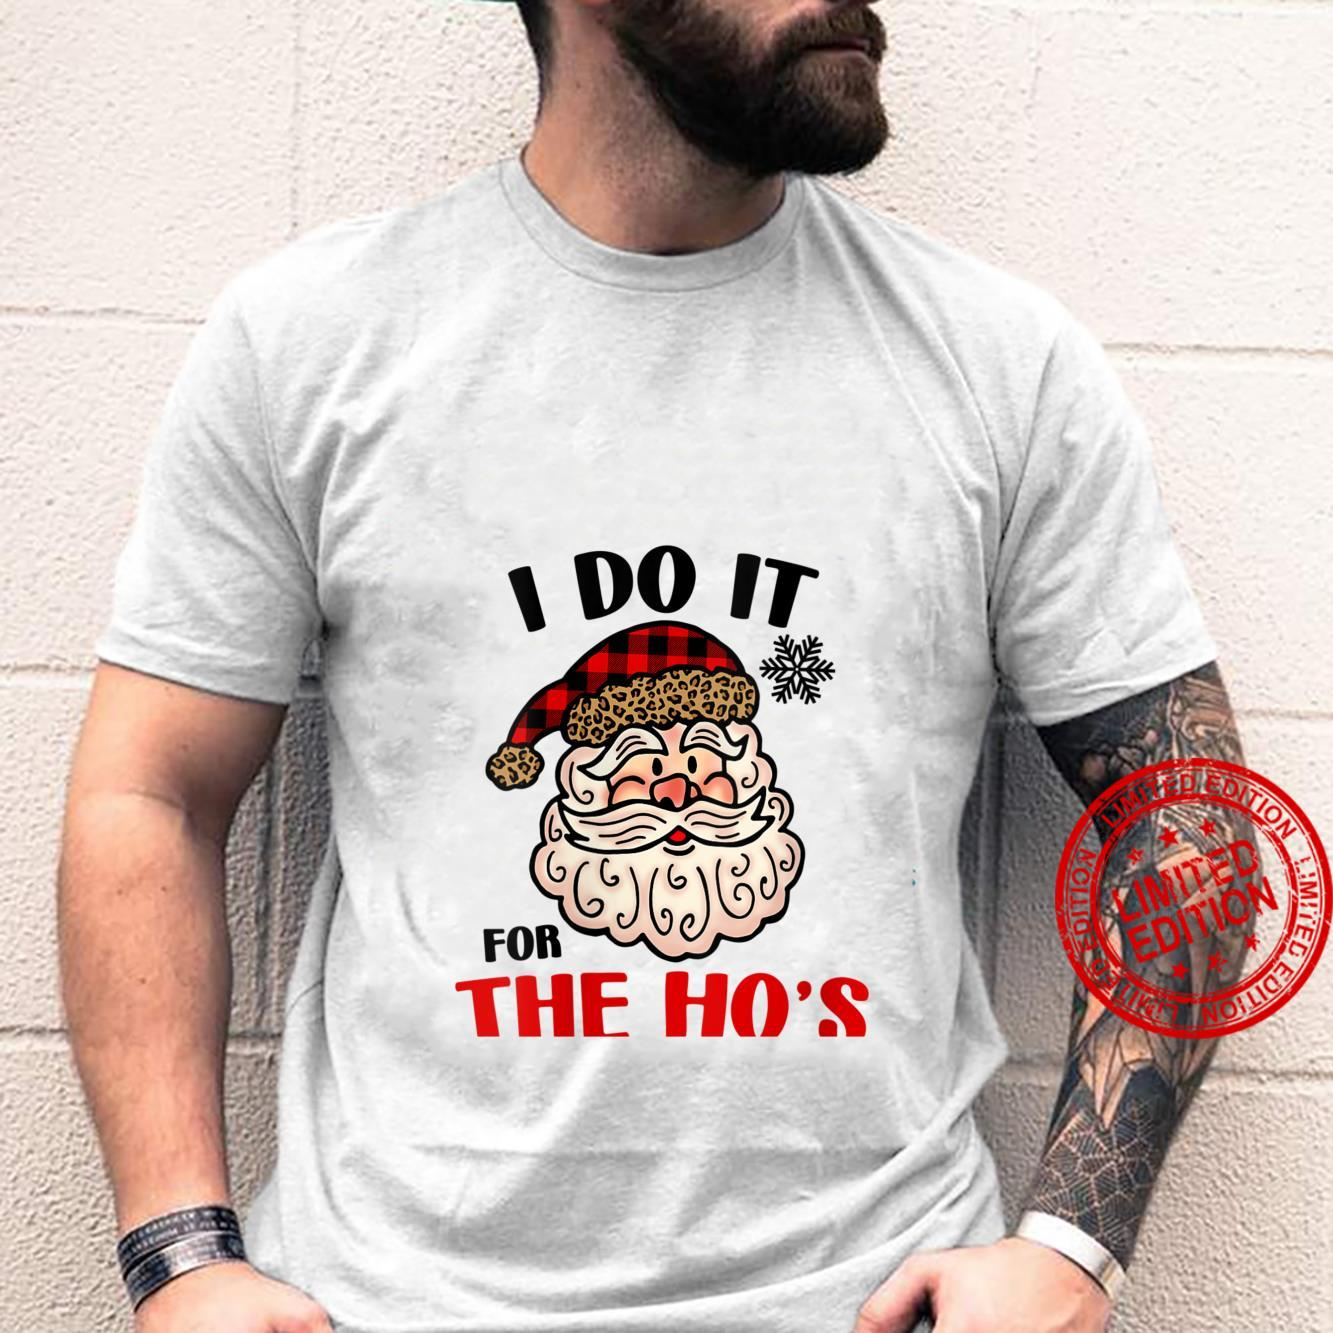 Womens I Do It For The Hos Shirt Santa Ugly Christmas in July Shirt